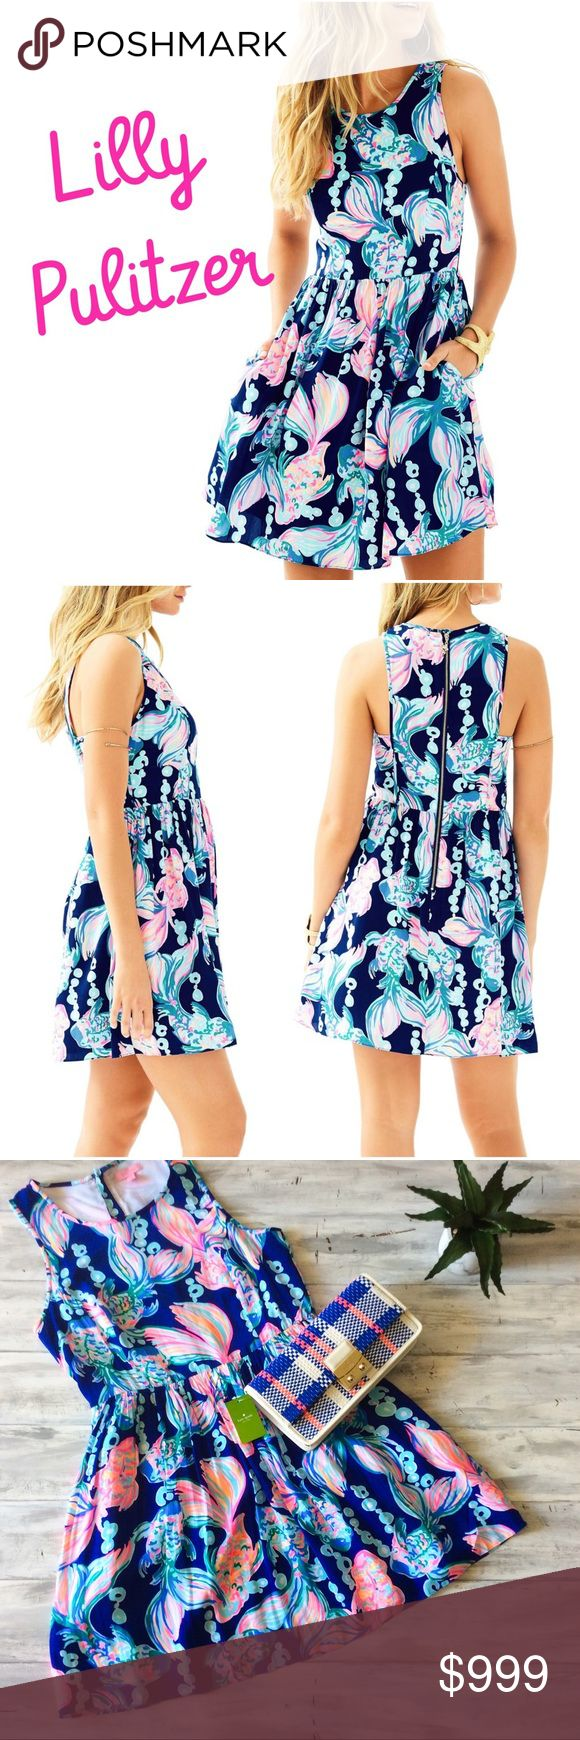 Coming Soon 🐠 Lilly Pulitzer Going Coastal Dress Coming soon brand new with tags  Lilly Pulitzer Kassia Dress in true blue going coastal. The holy grail of Lilly dresses. Sold out every place in every size!  Price will be lowered when the item actual goes on sale. This is a preview listing, tag yourself to be notified when it's available. The pictures 2-4 are the actual dress. Lilly Pulitzer Dresses